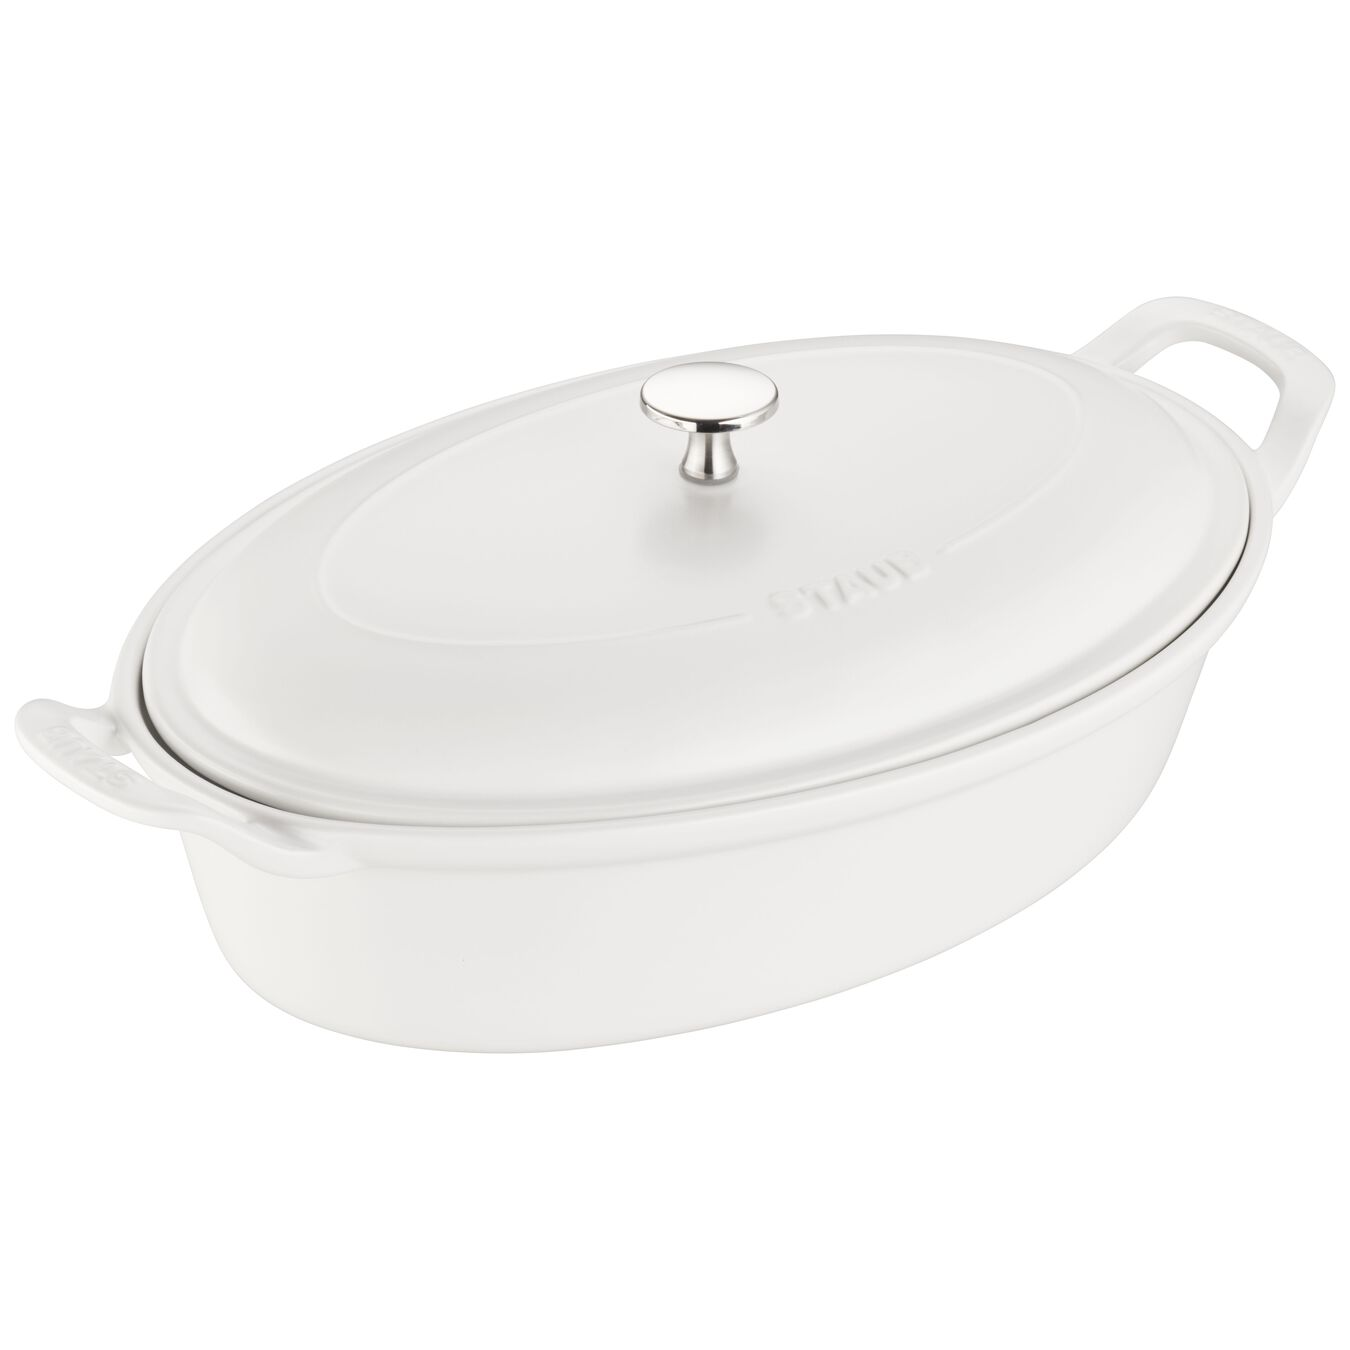 14-inch Oval Covered Baking Dish - Matte White,,large 1